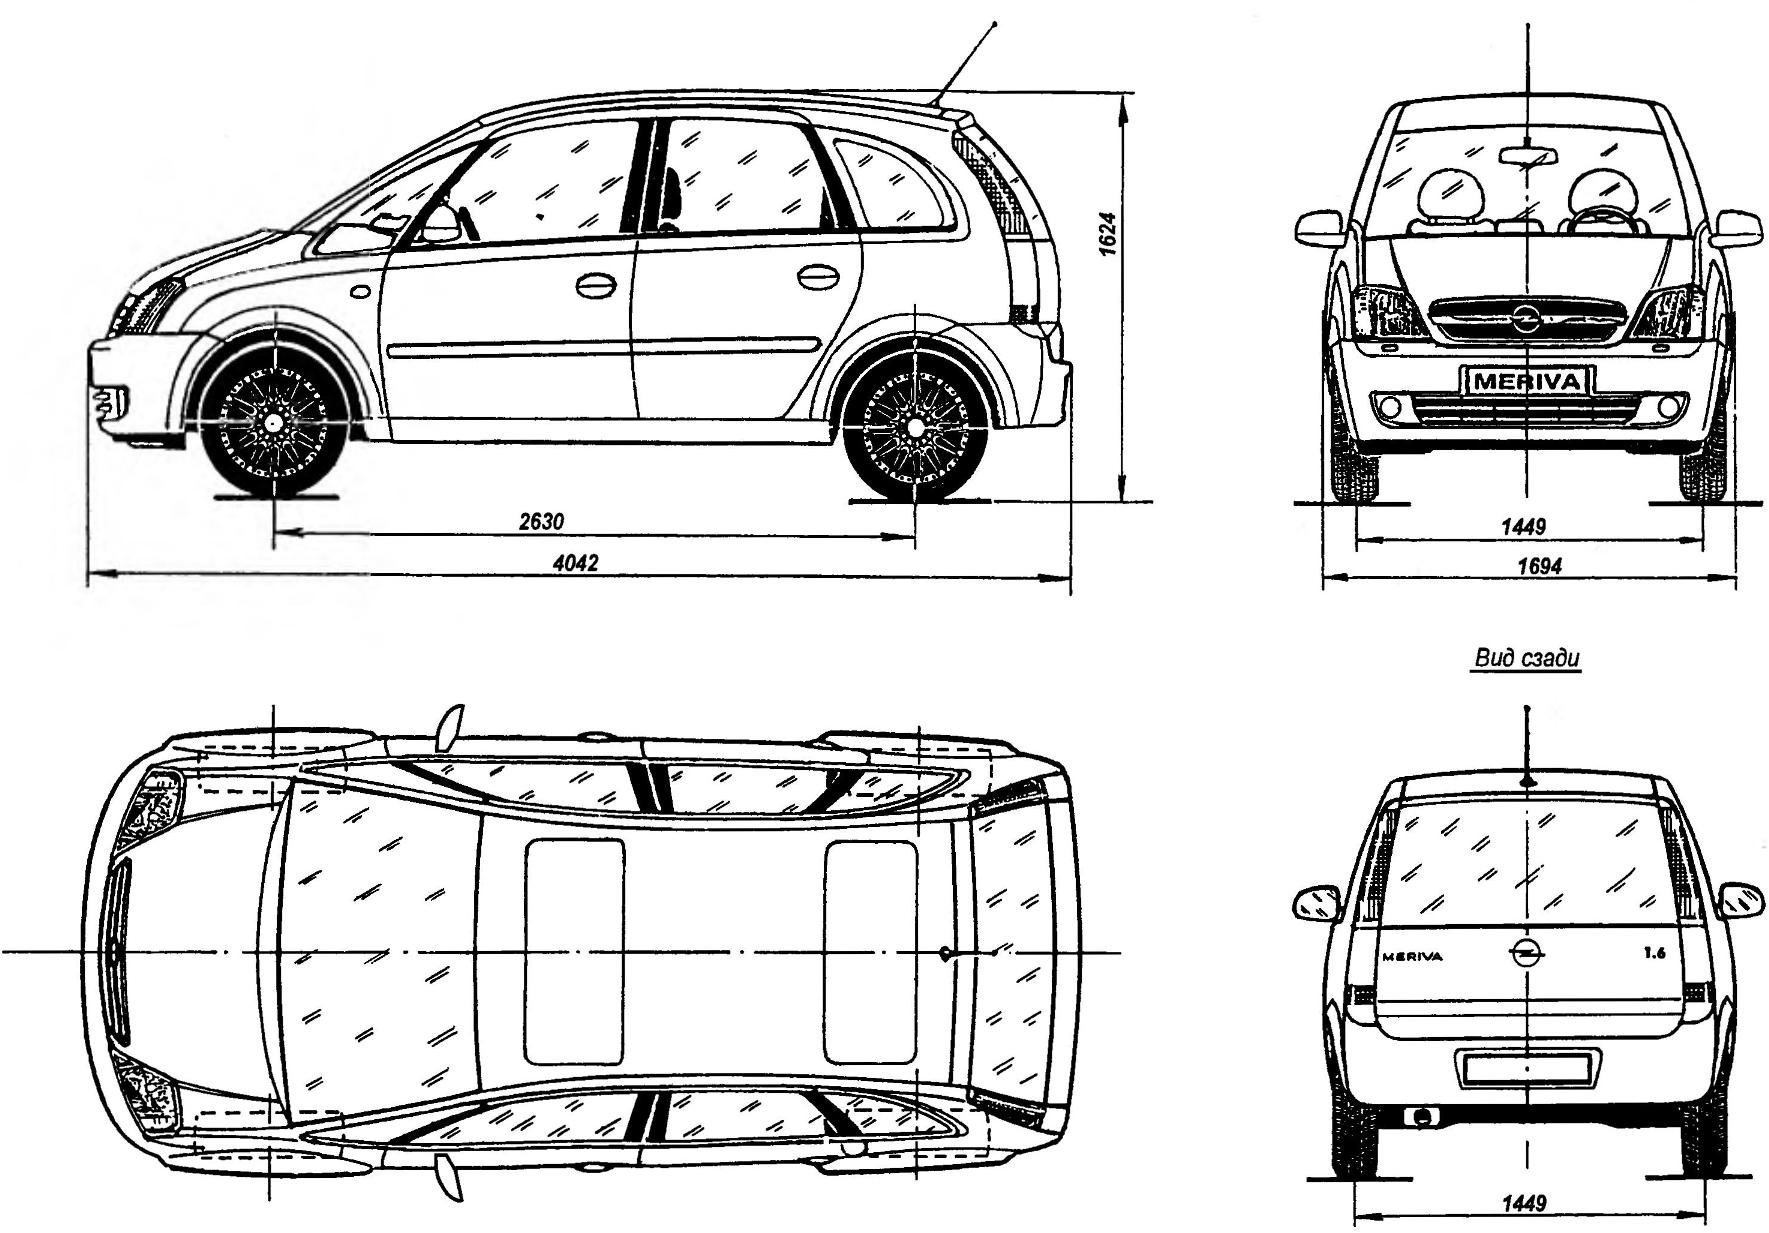 Geometry volume of OPEL MERIVA